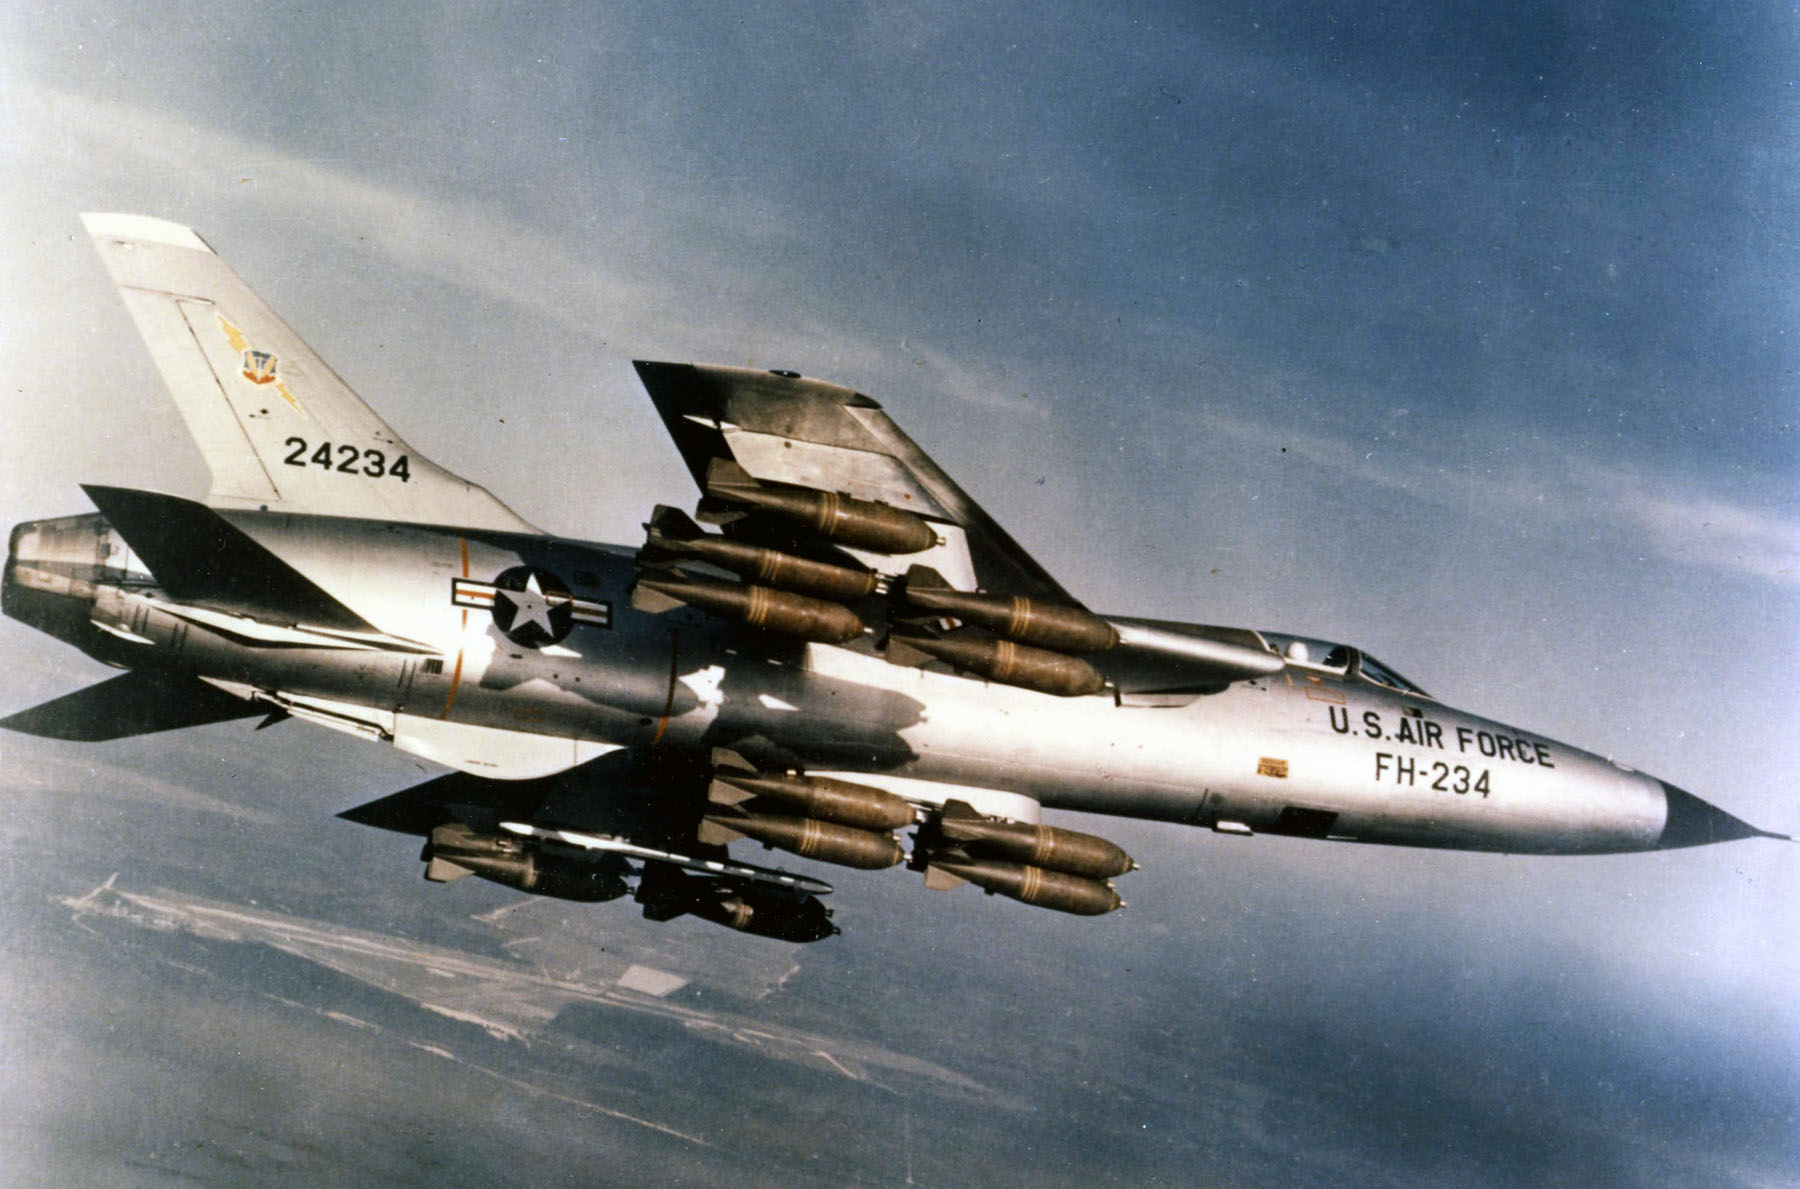 Republic_F-105D-30-RE_(SN_62-4234)_in_fl